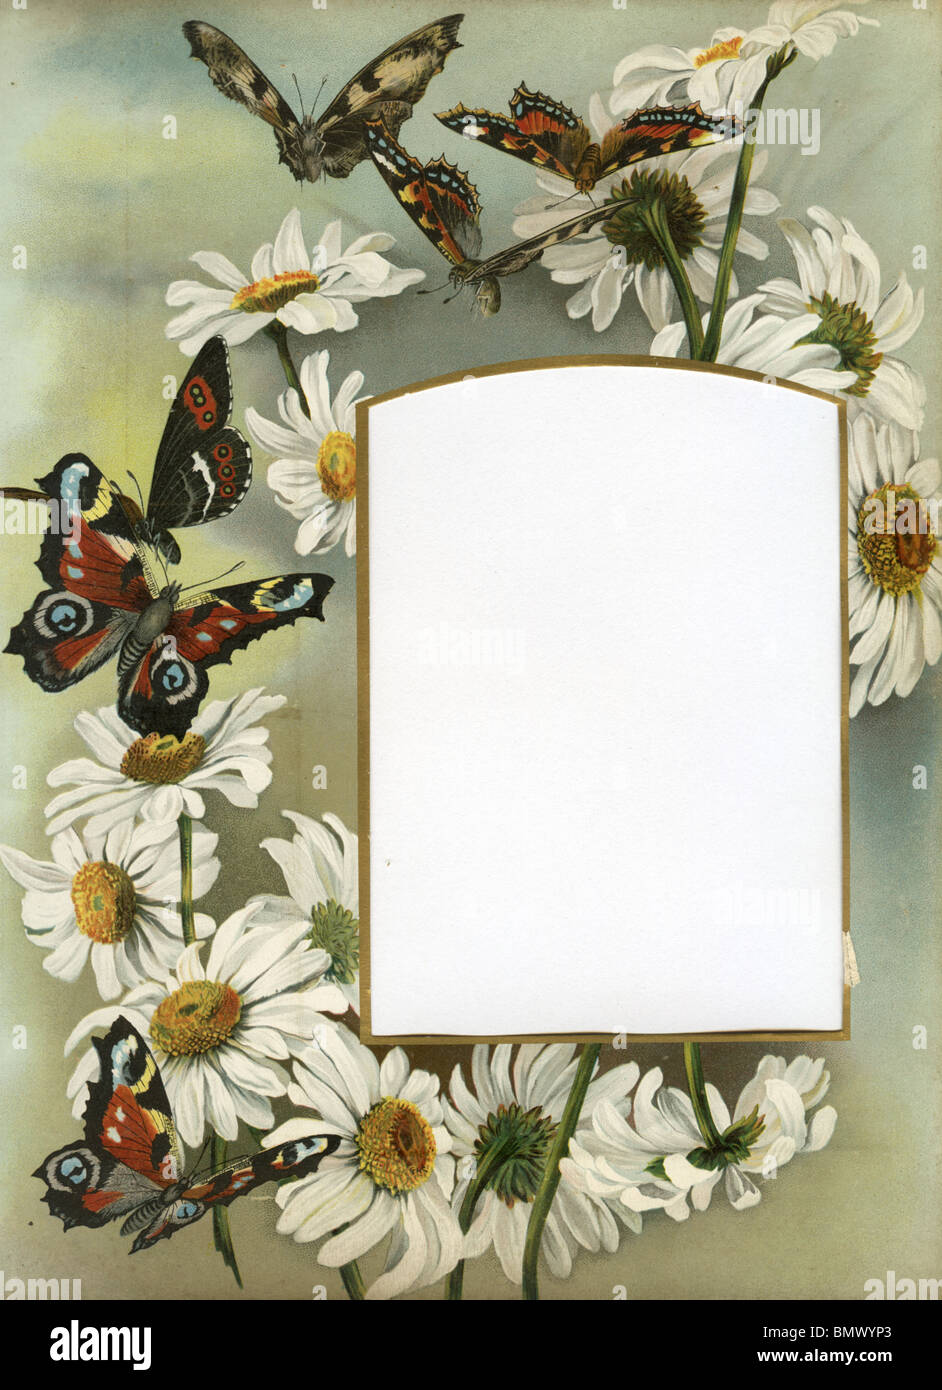 Flower Butterfly Painting Frame Stockfotos & Flower Butterfly ...